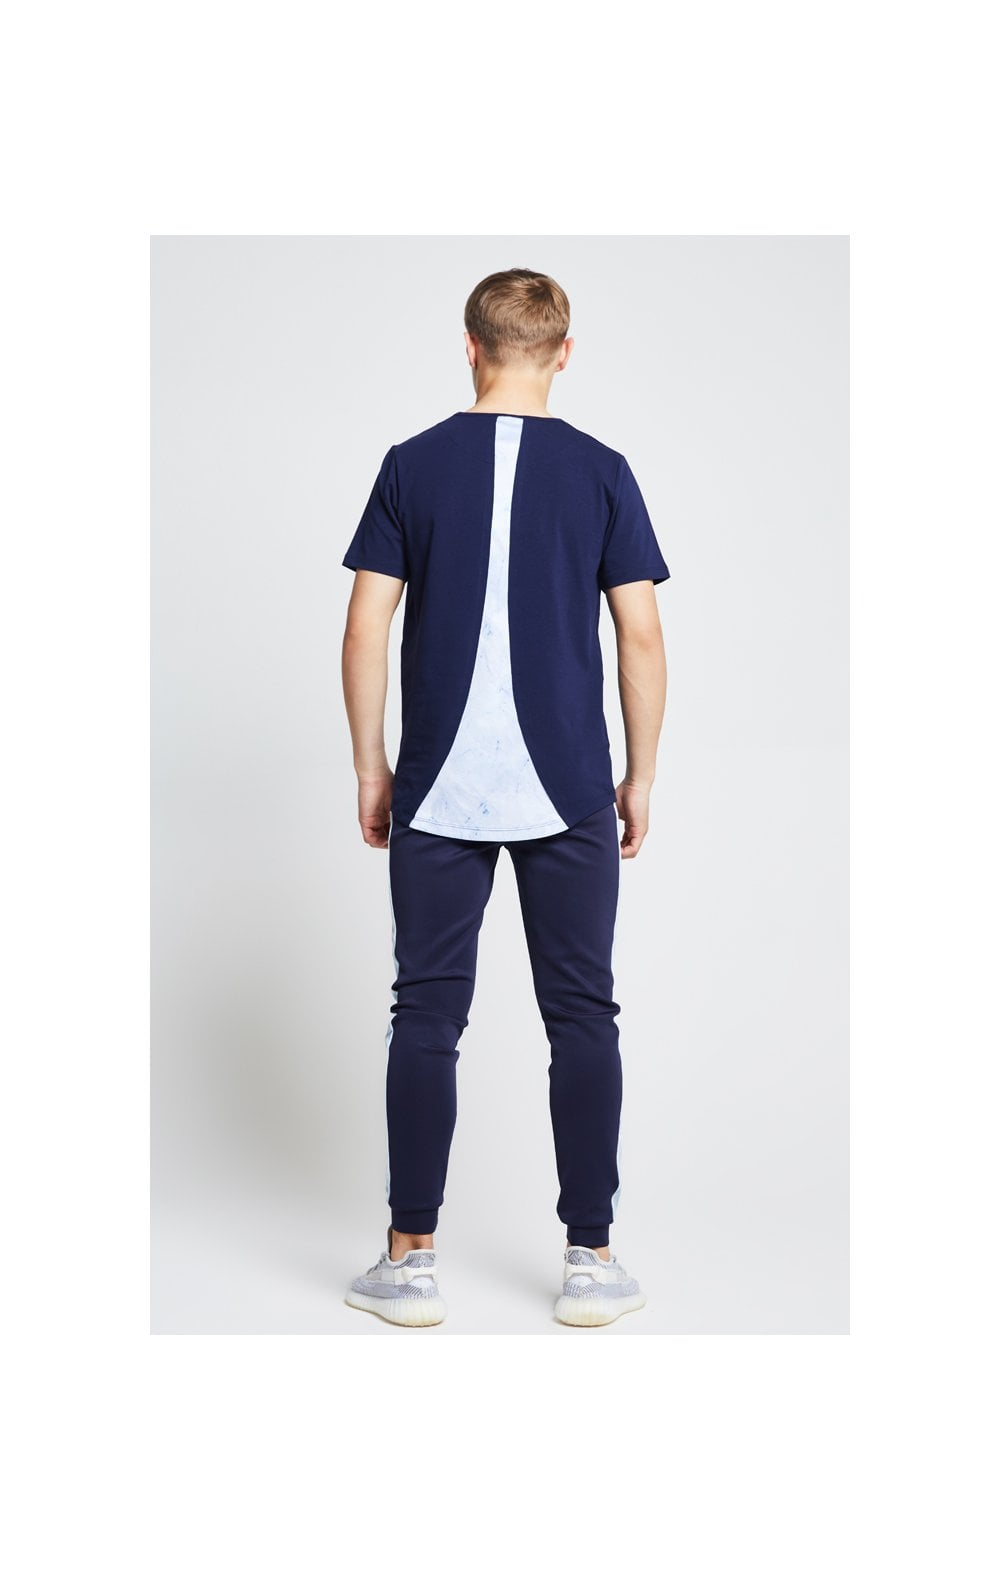 Illusive London Marble Racer Back Tee – Navy & Marble (6)